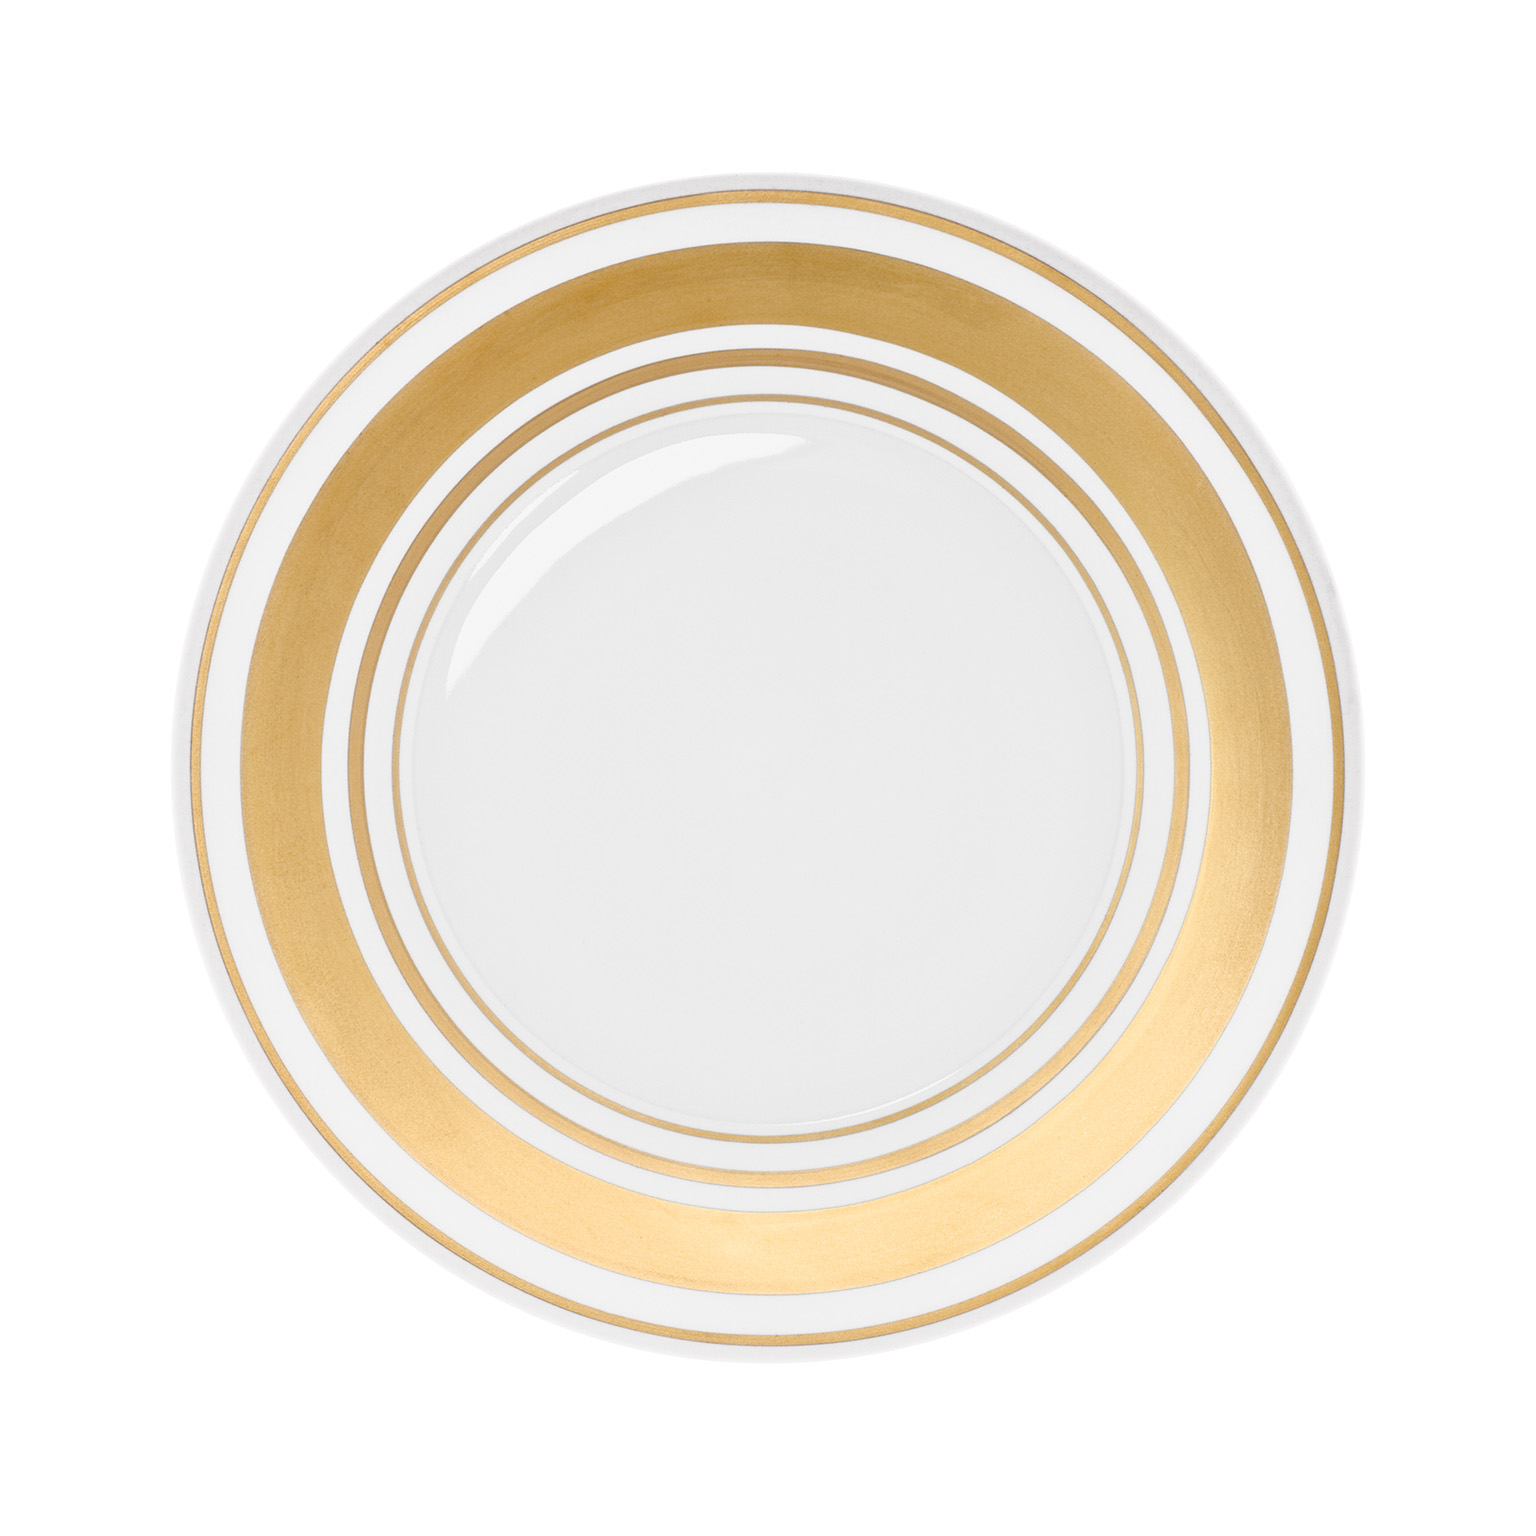 Glamour Gold Dinner Plate